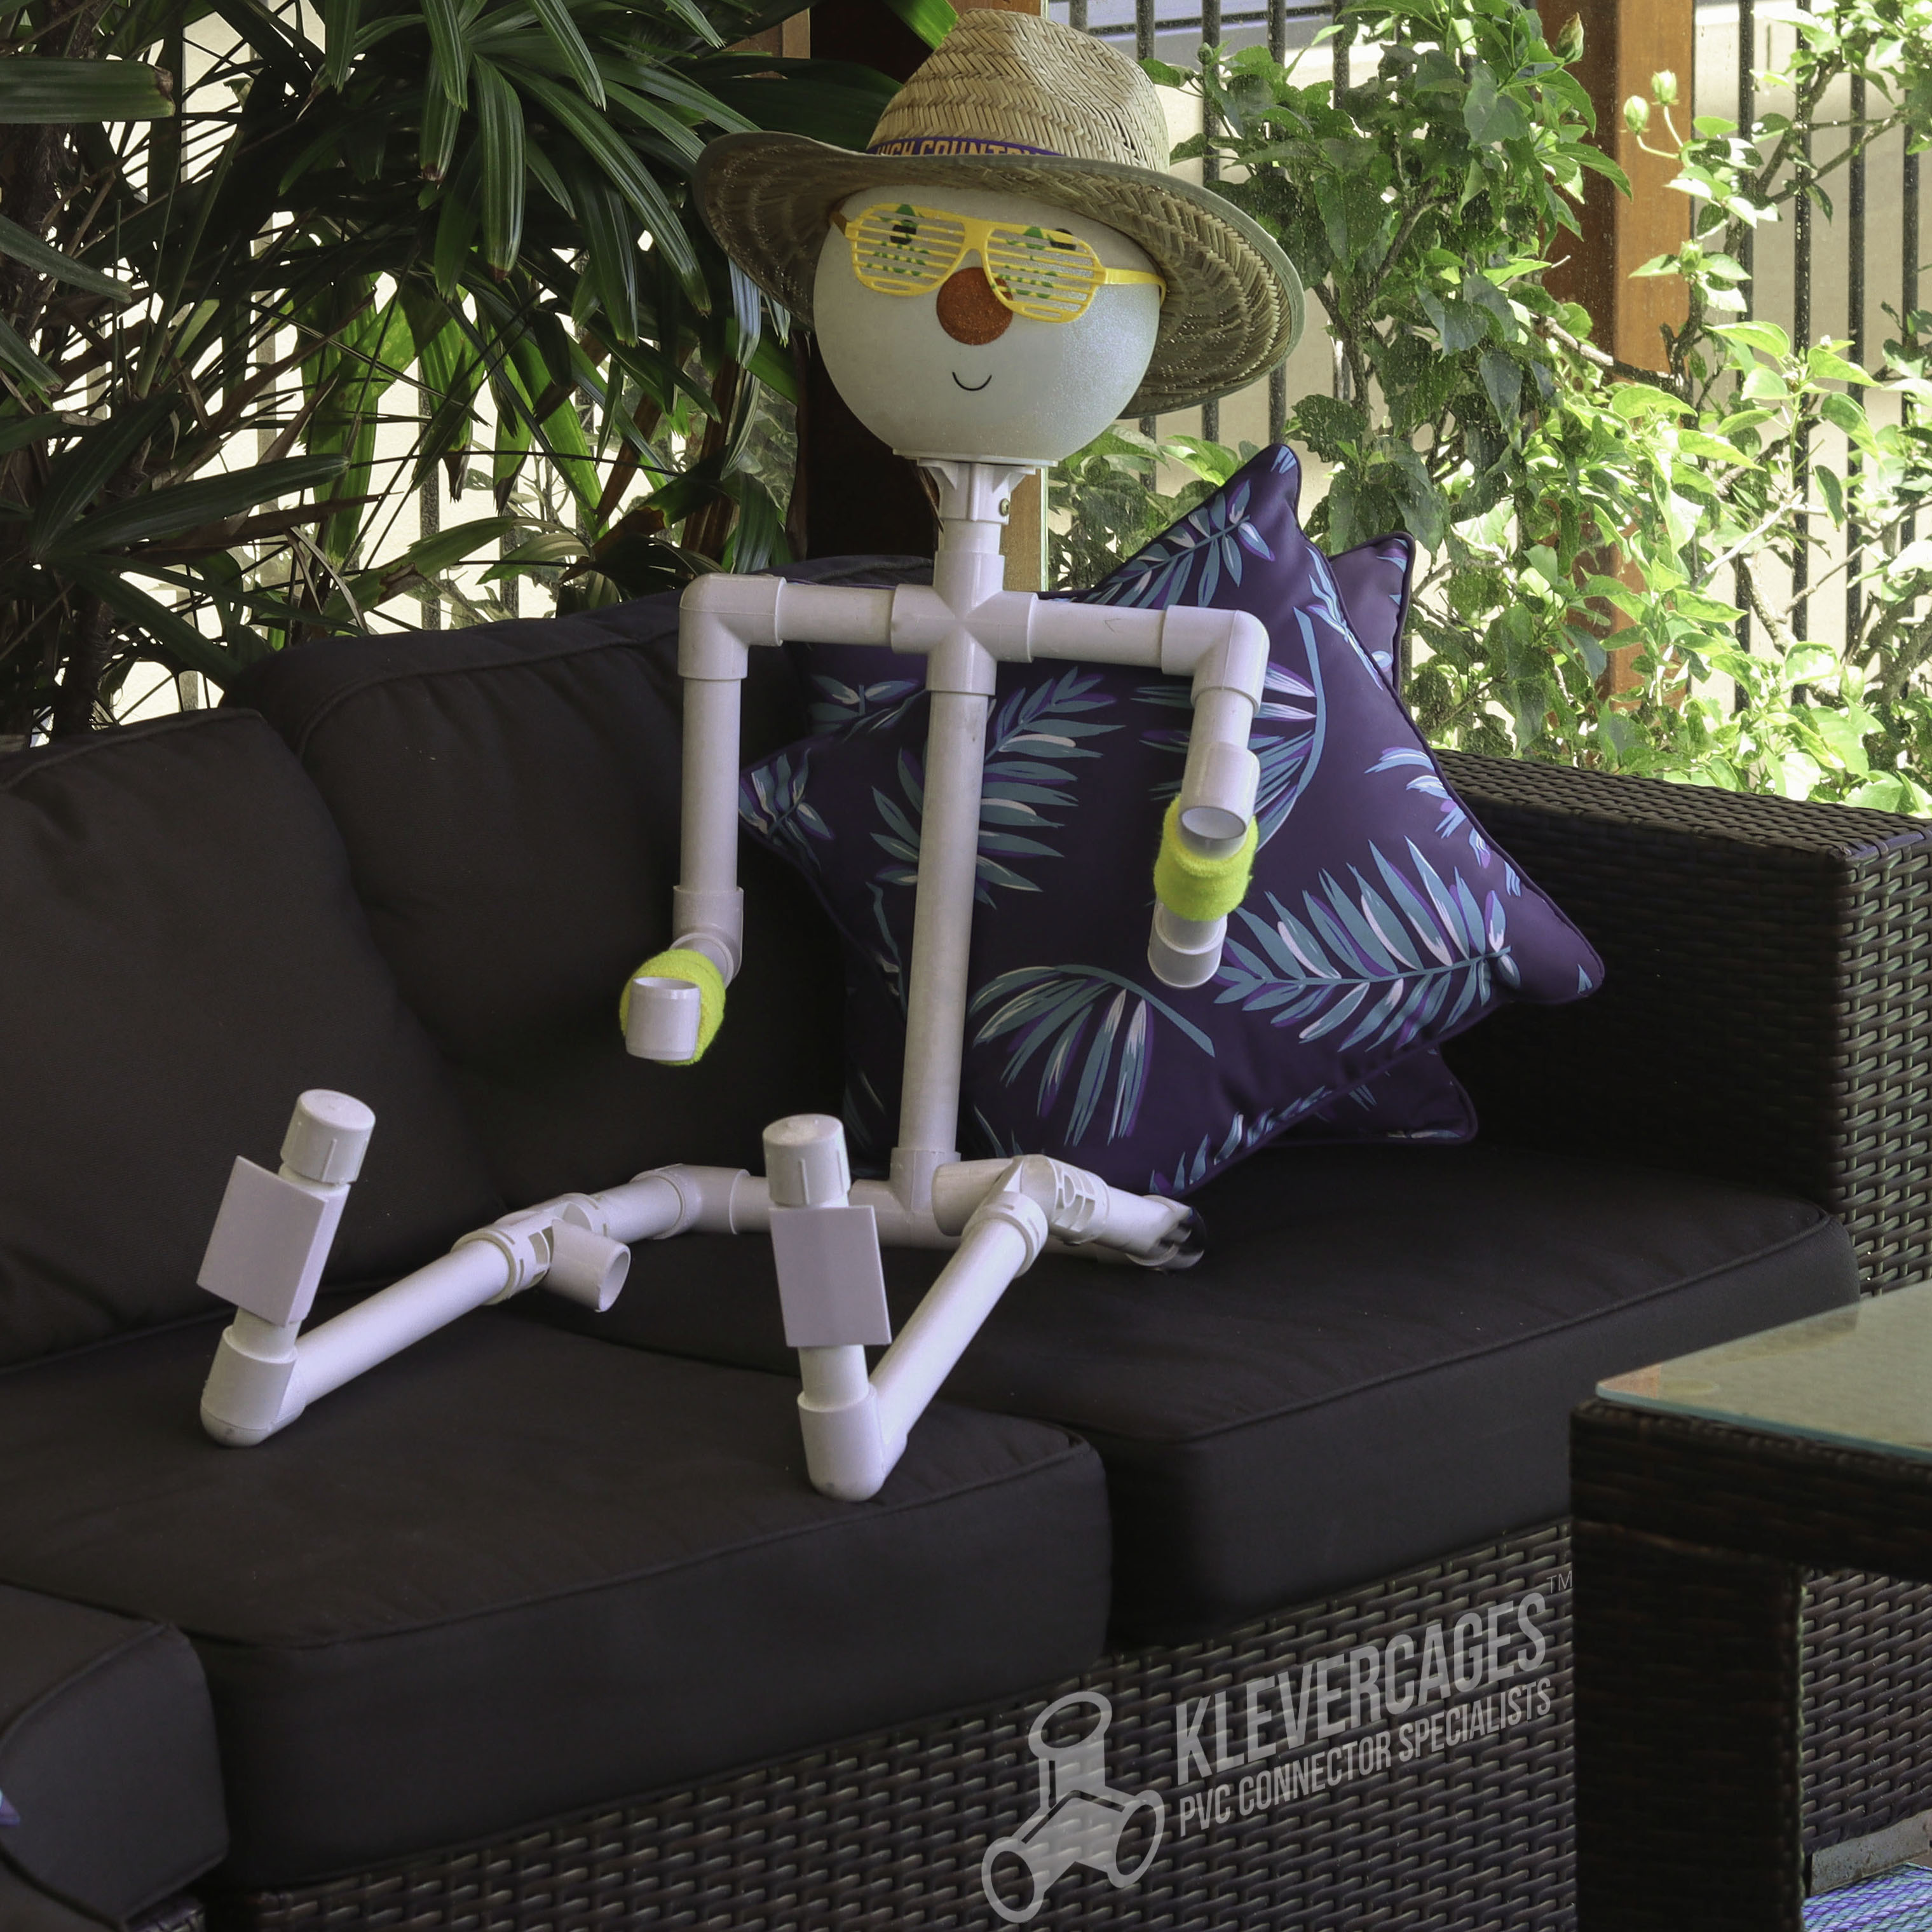 Connector Cam (PVC pipe person) built from elbows, crosses, sliptees and more connectors and PVC pipe sitting on a lounge relaxing with a hat on